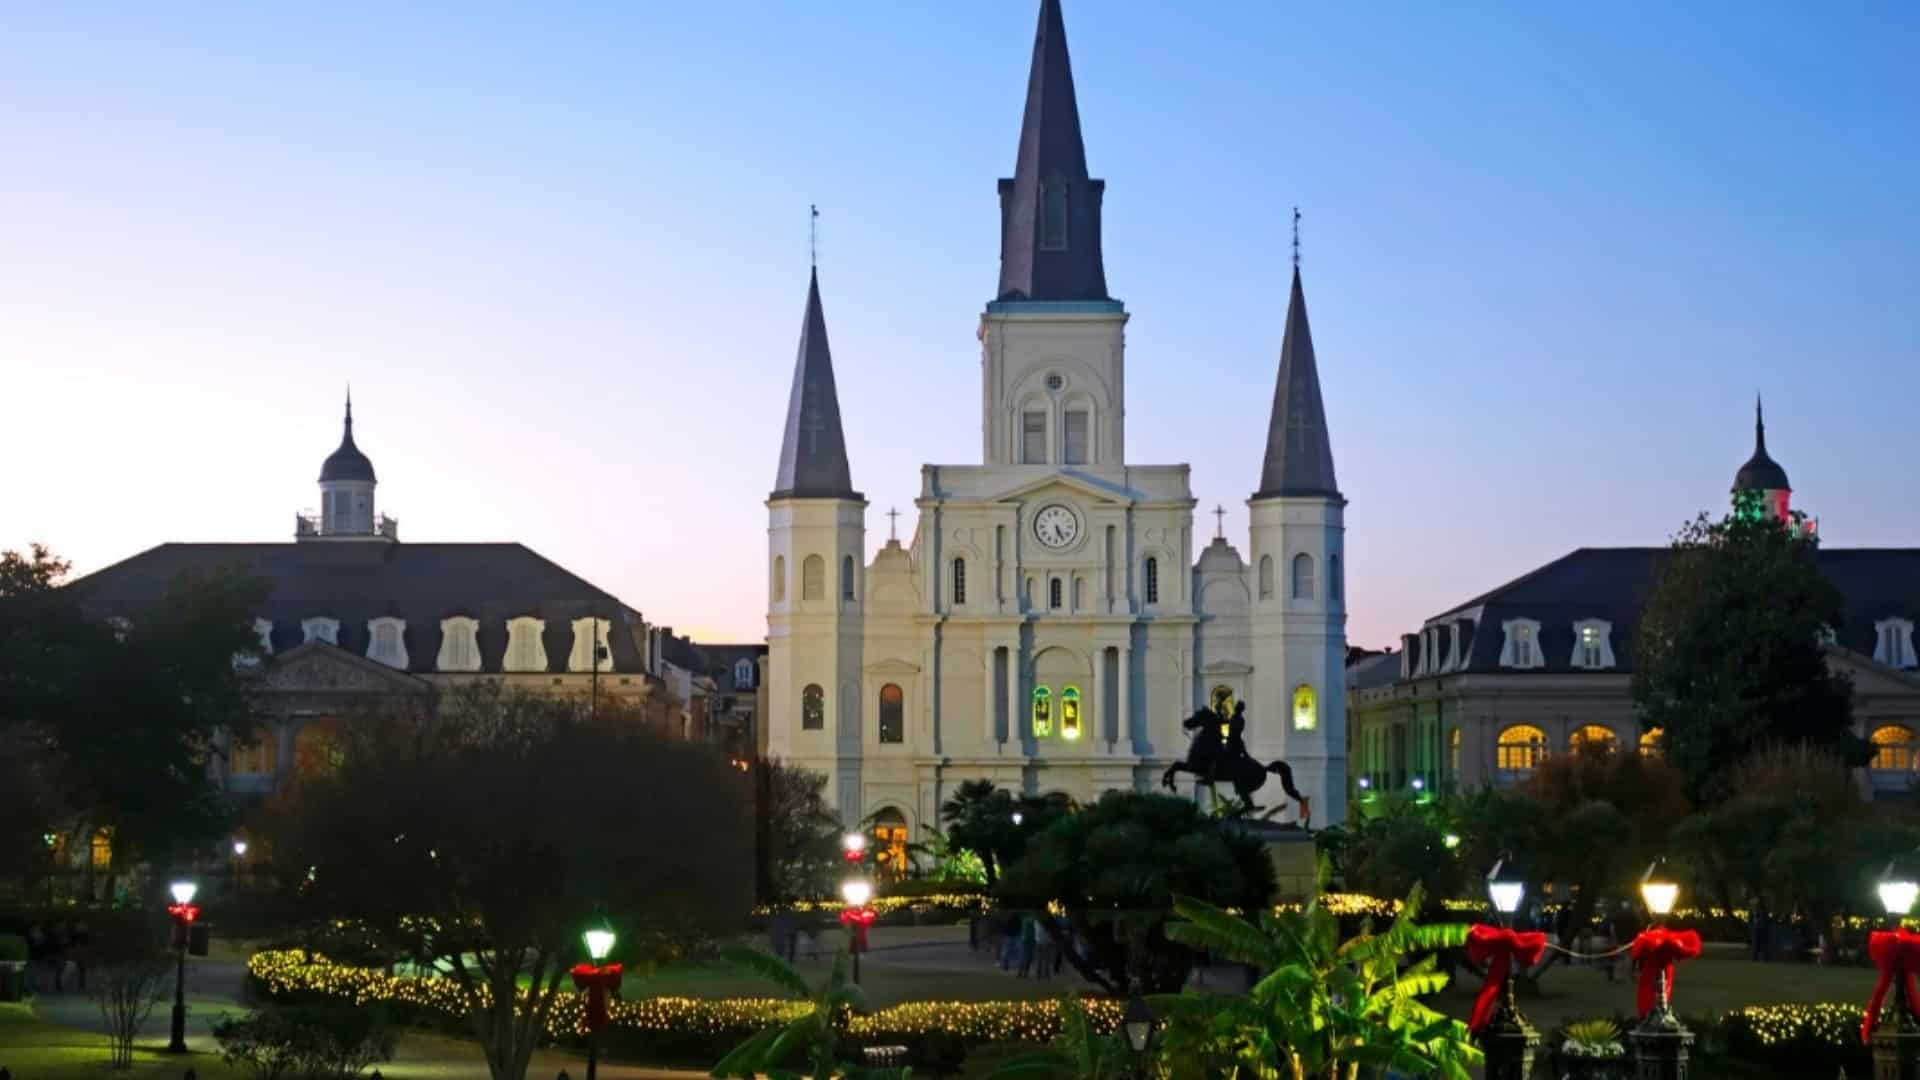 Jackson Square in New Orleans at Christmas time.